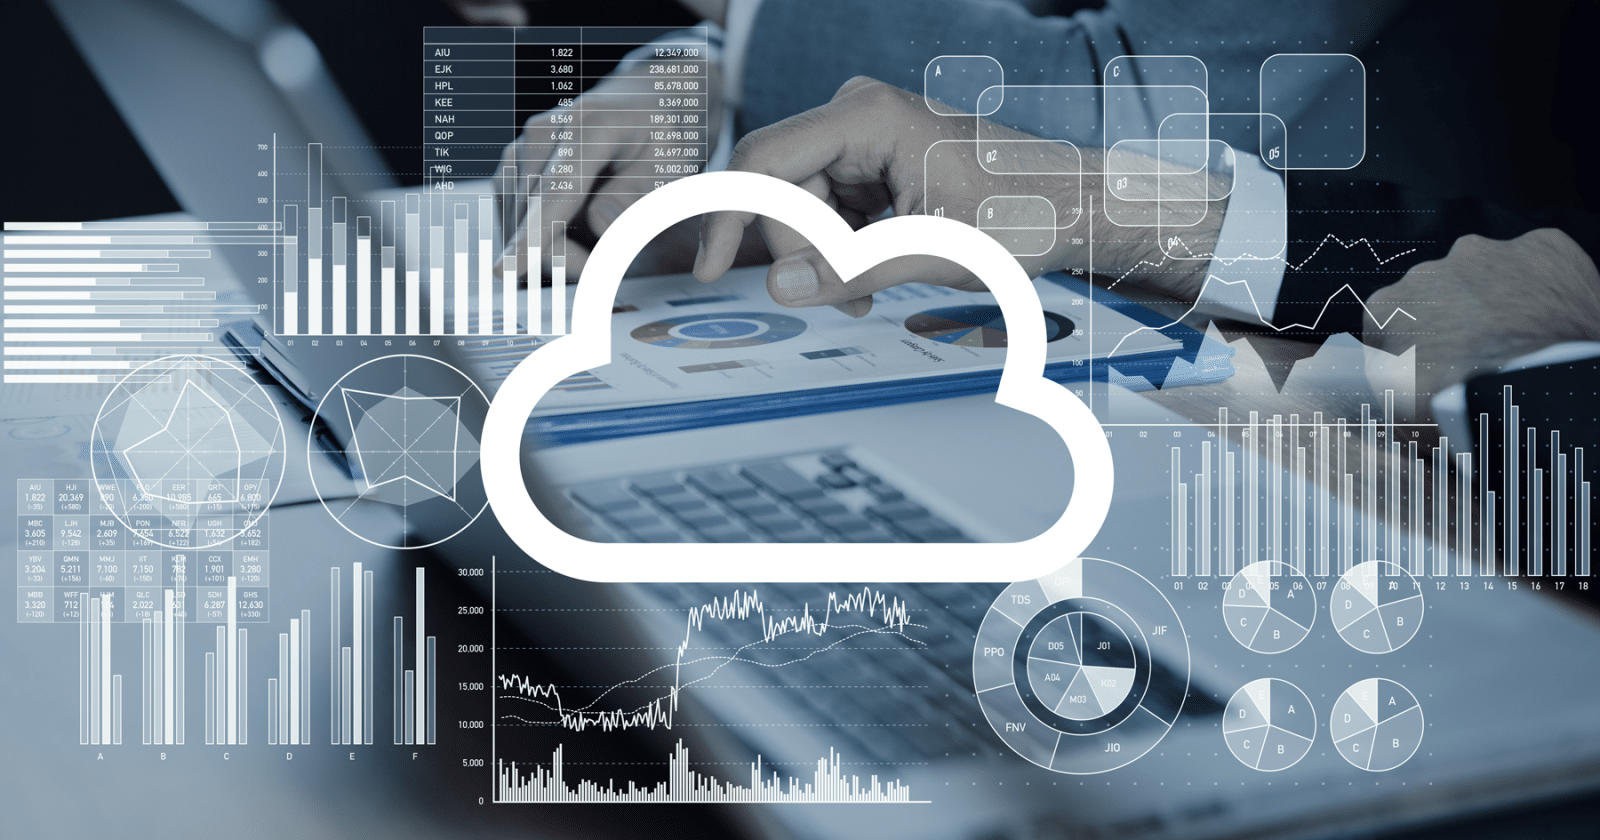 The Benefits Of Cloud Faxing For Financial Service Firms Now and Beyond